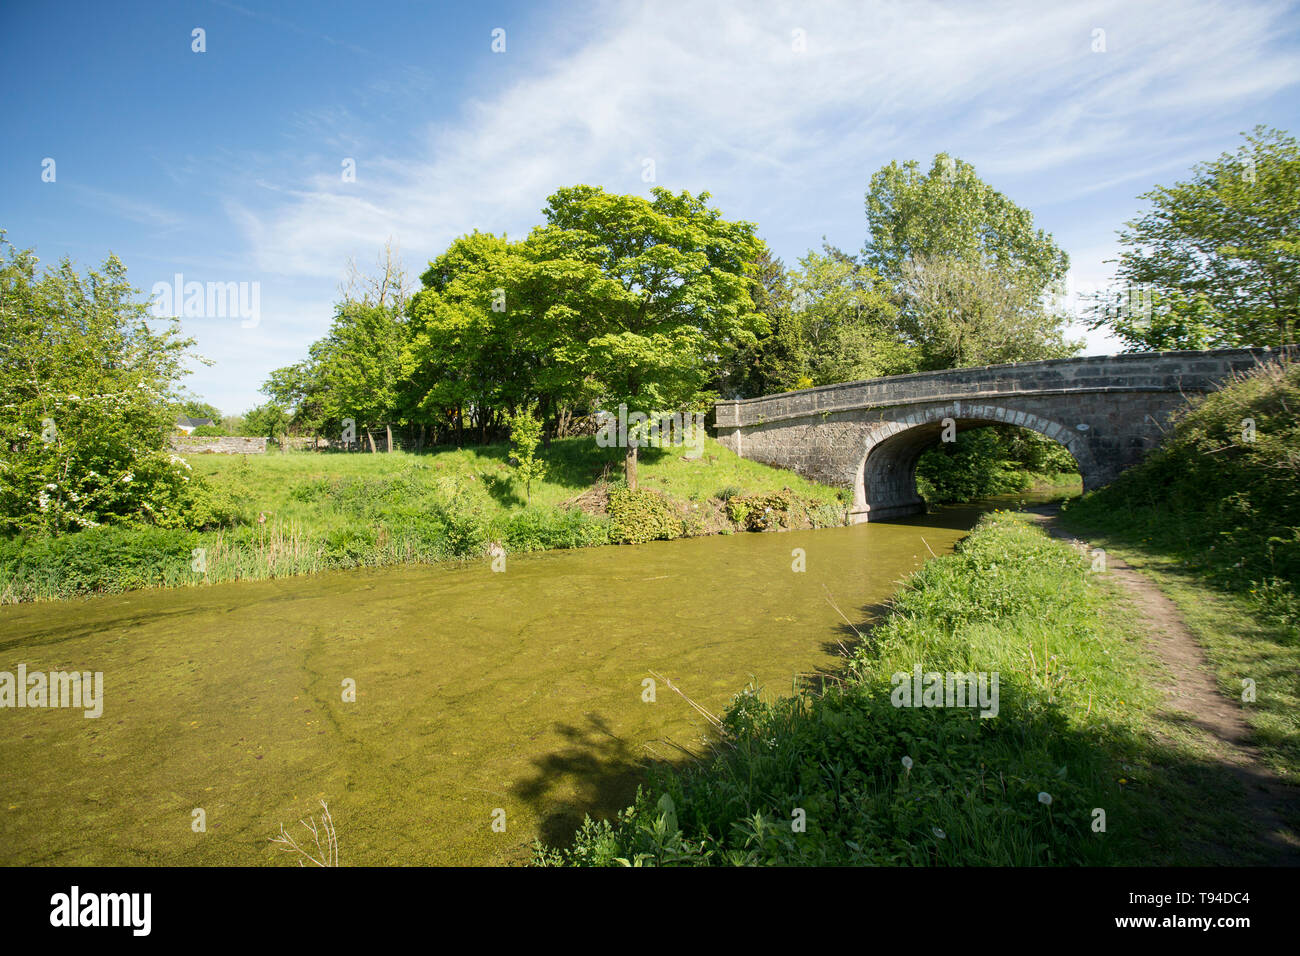 A view of a disused section of the Lancaster Canal and bridge number 166 and towpath near the village of Crooklands in Cumbria. Cumbria, England UK GB - Stock Image